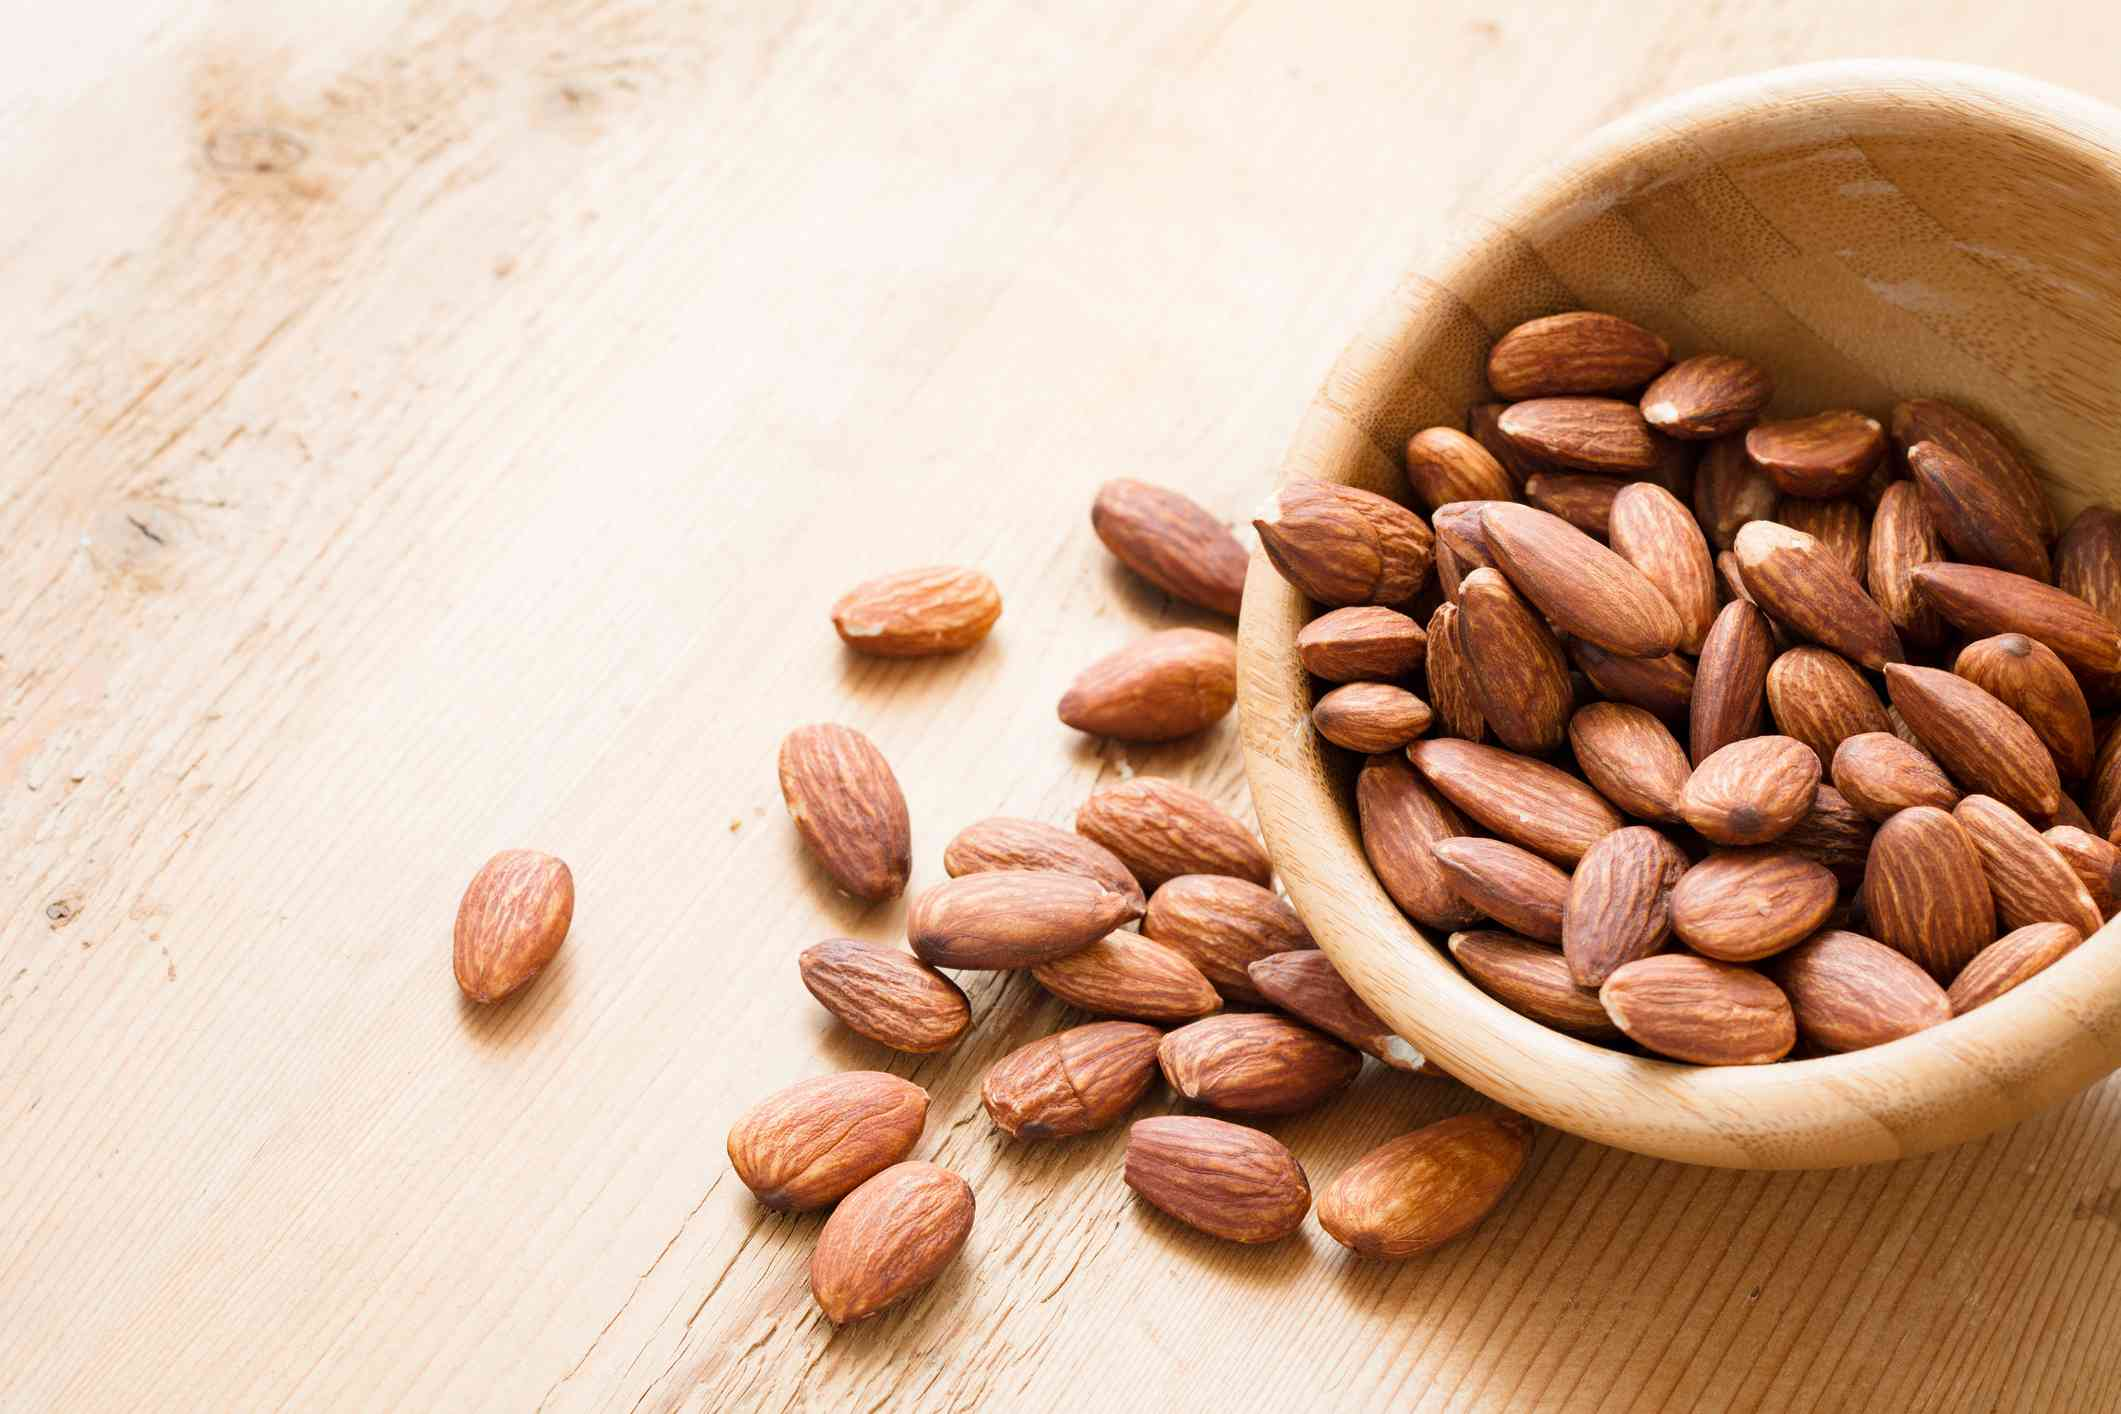 Almonds spilling out of bowl